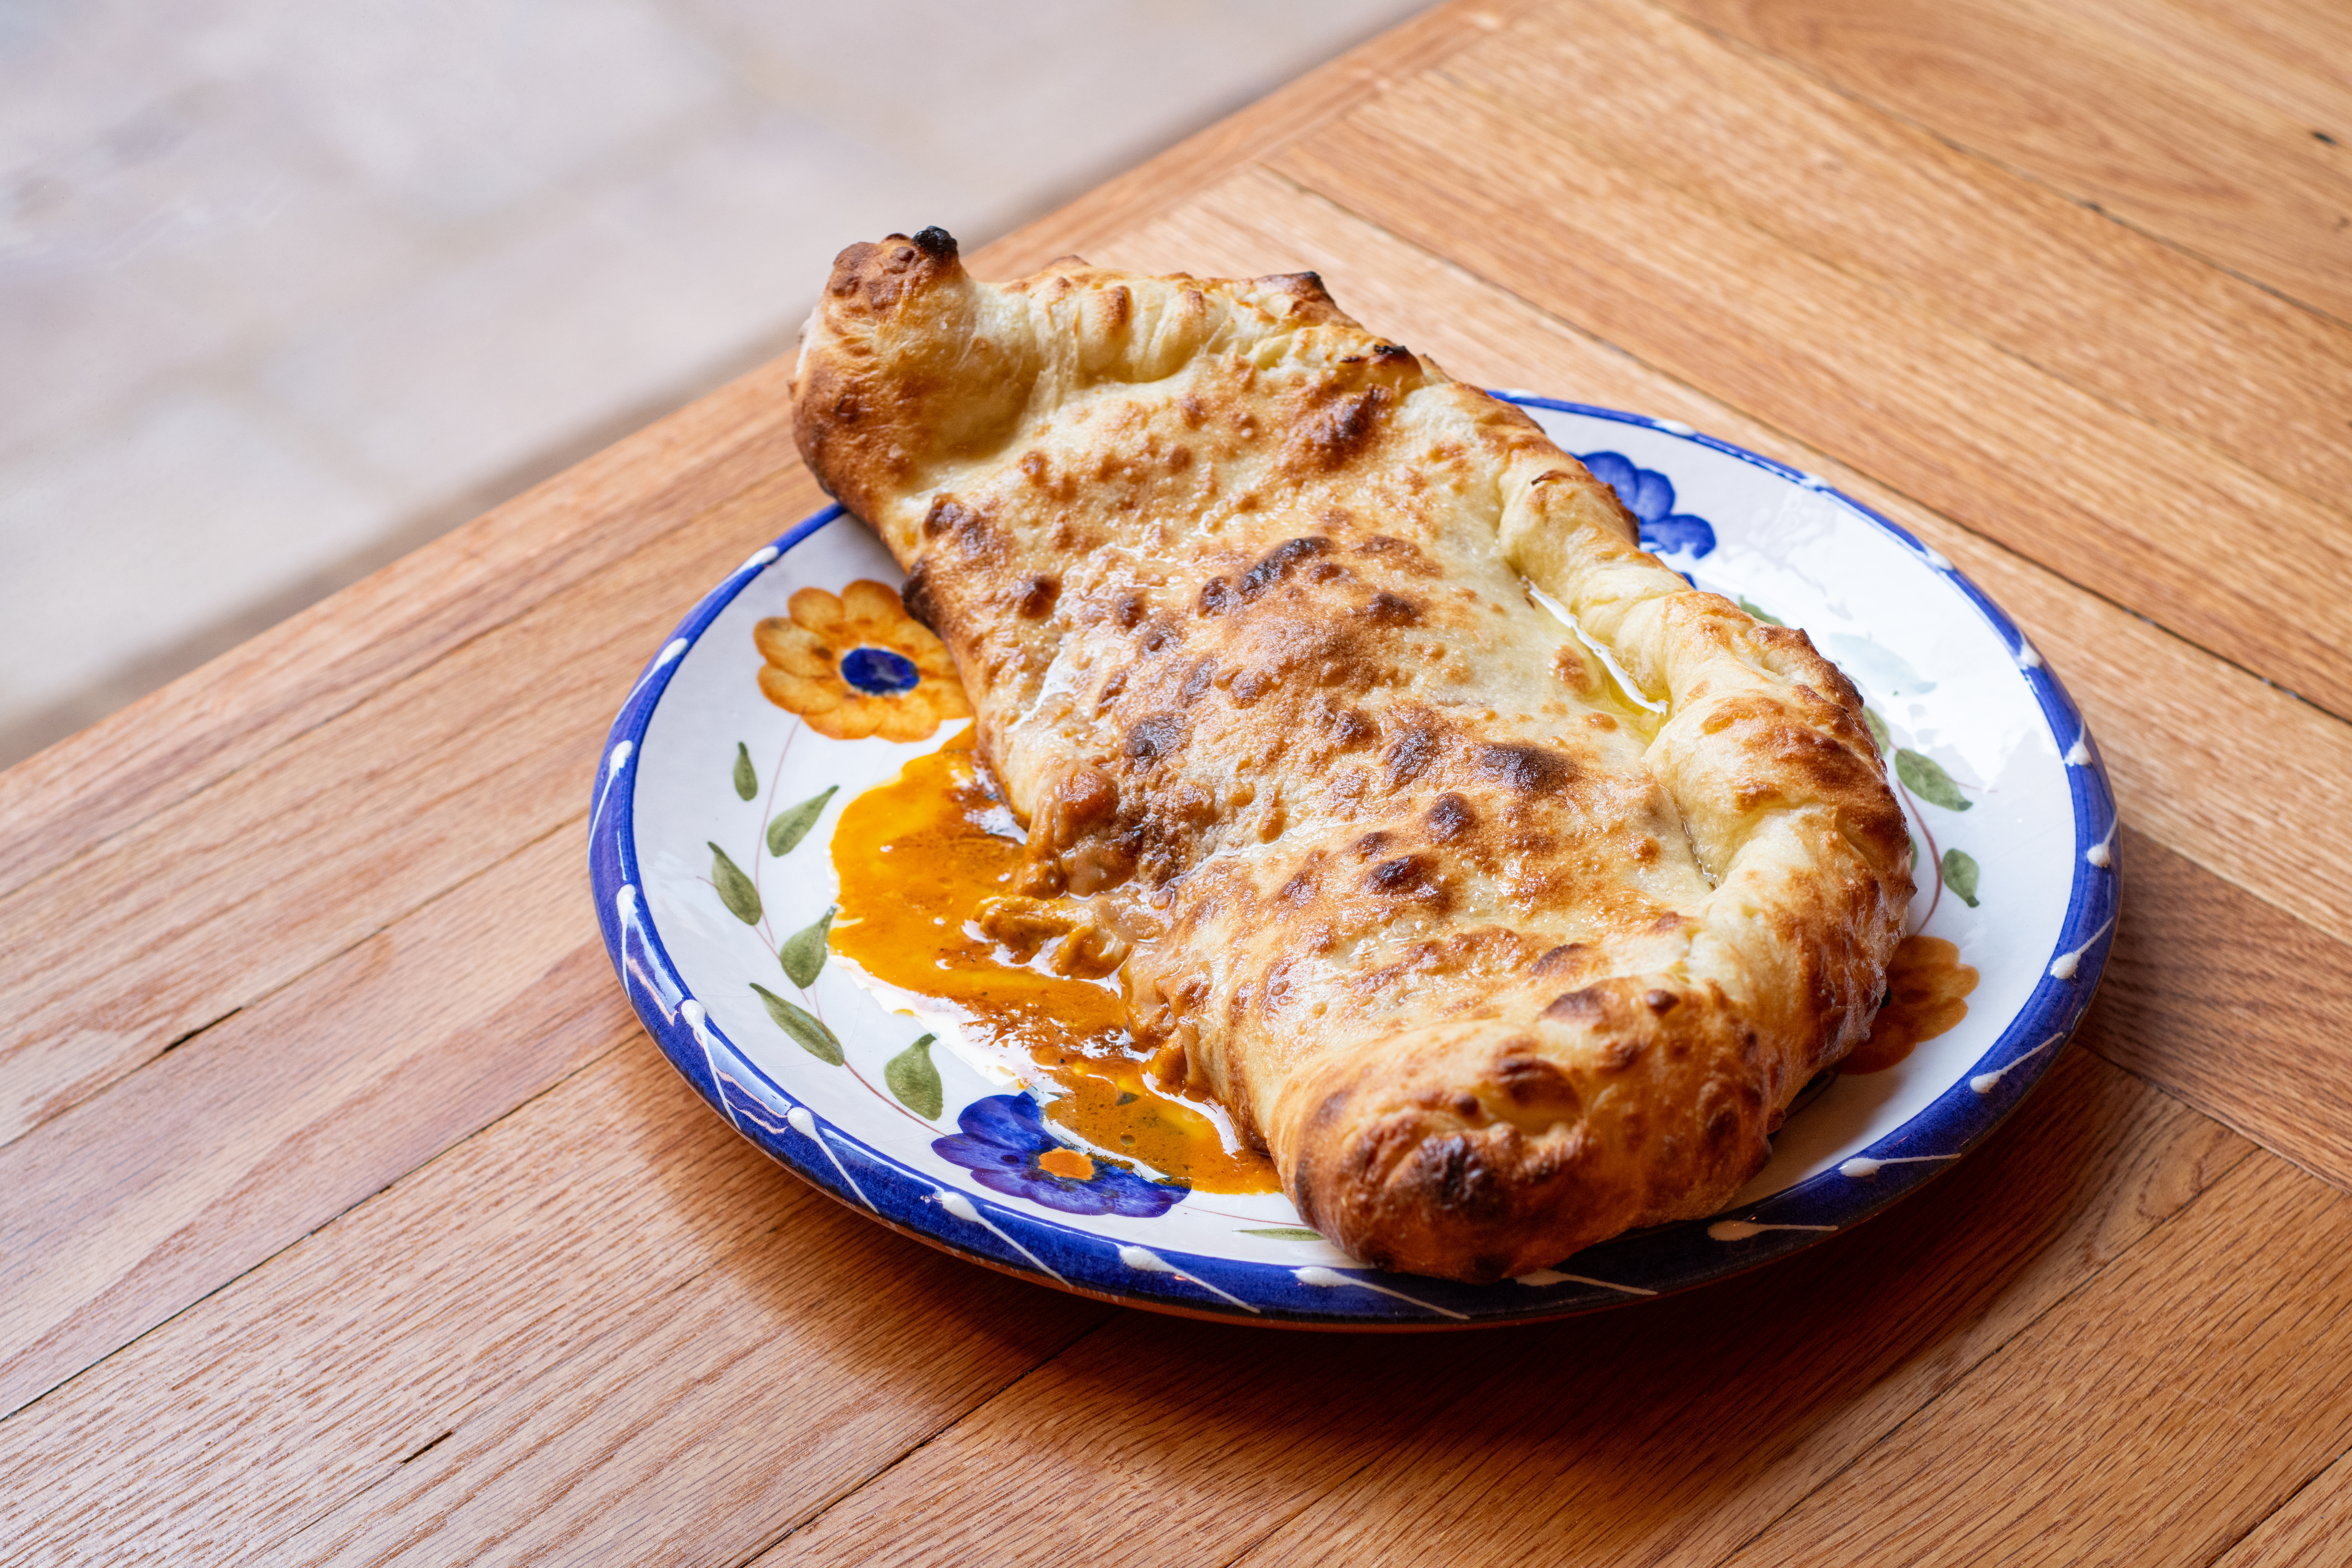 A baked and folded naan bread pocket on a blue and white plate stuffed with orange butter chicken sauce.